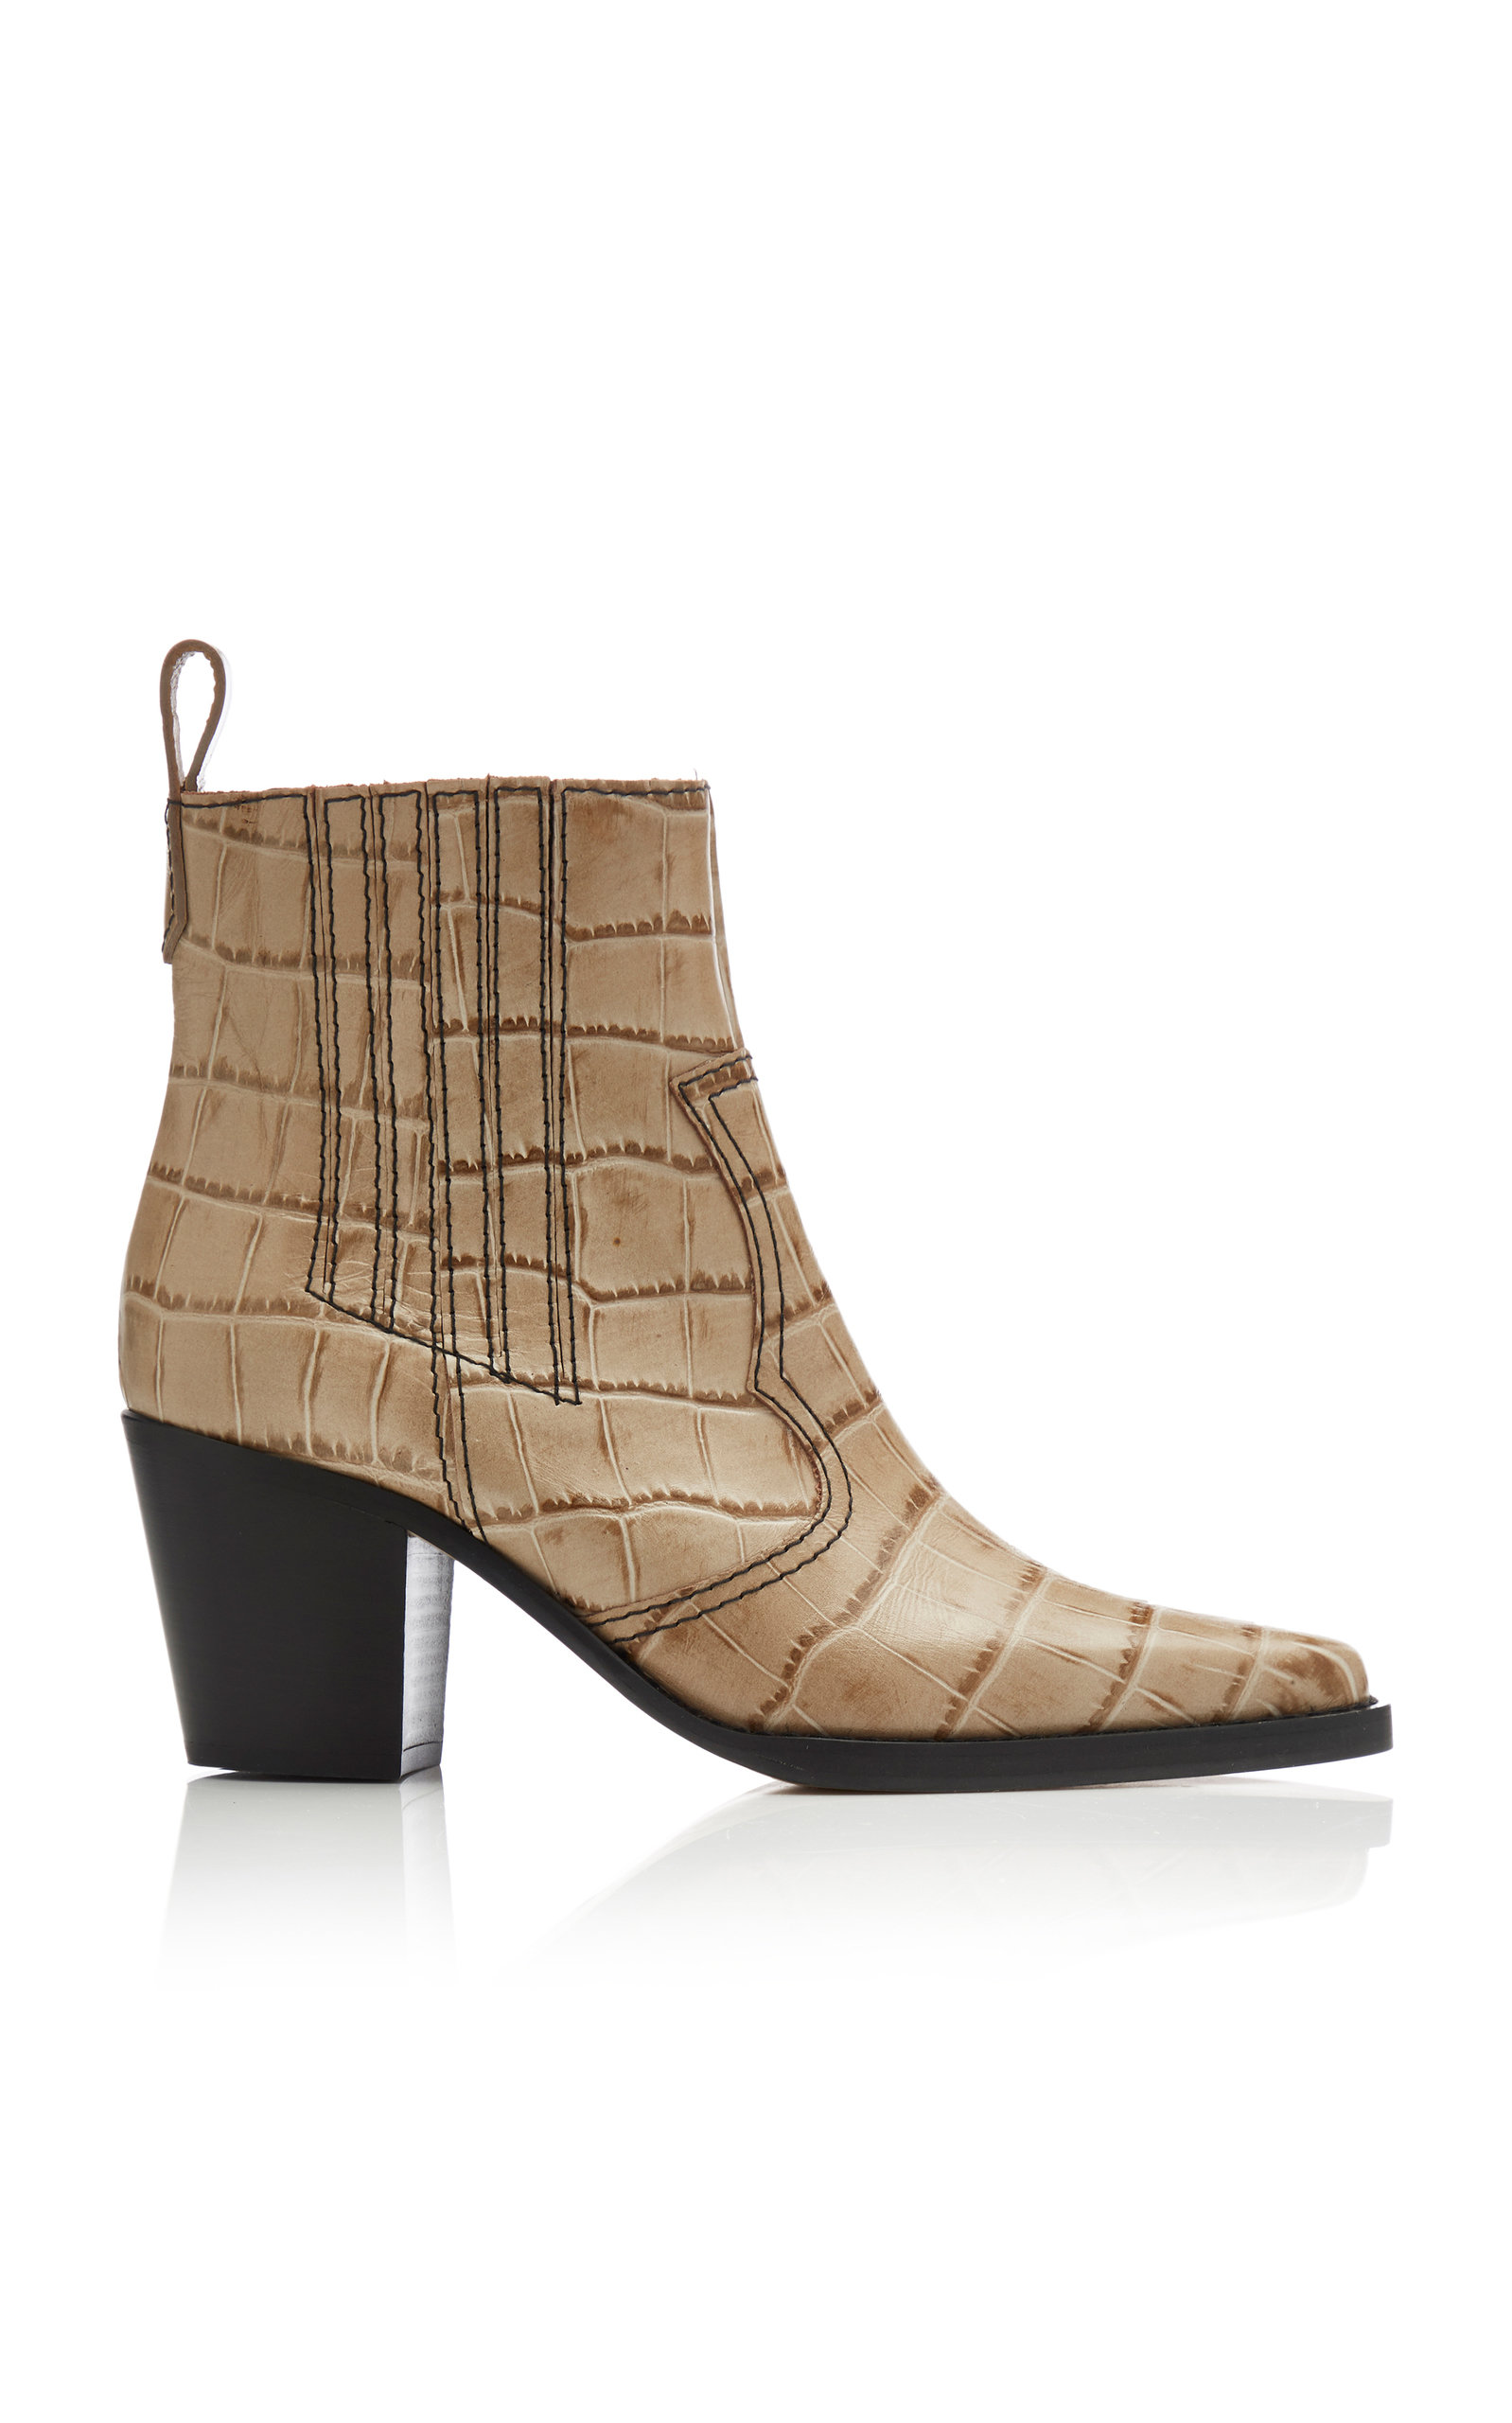 Ganni Boots Croc-Effect Leather Ankle Boots